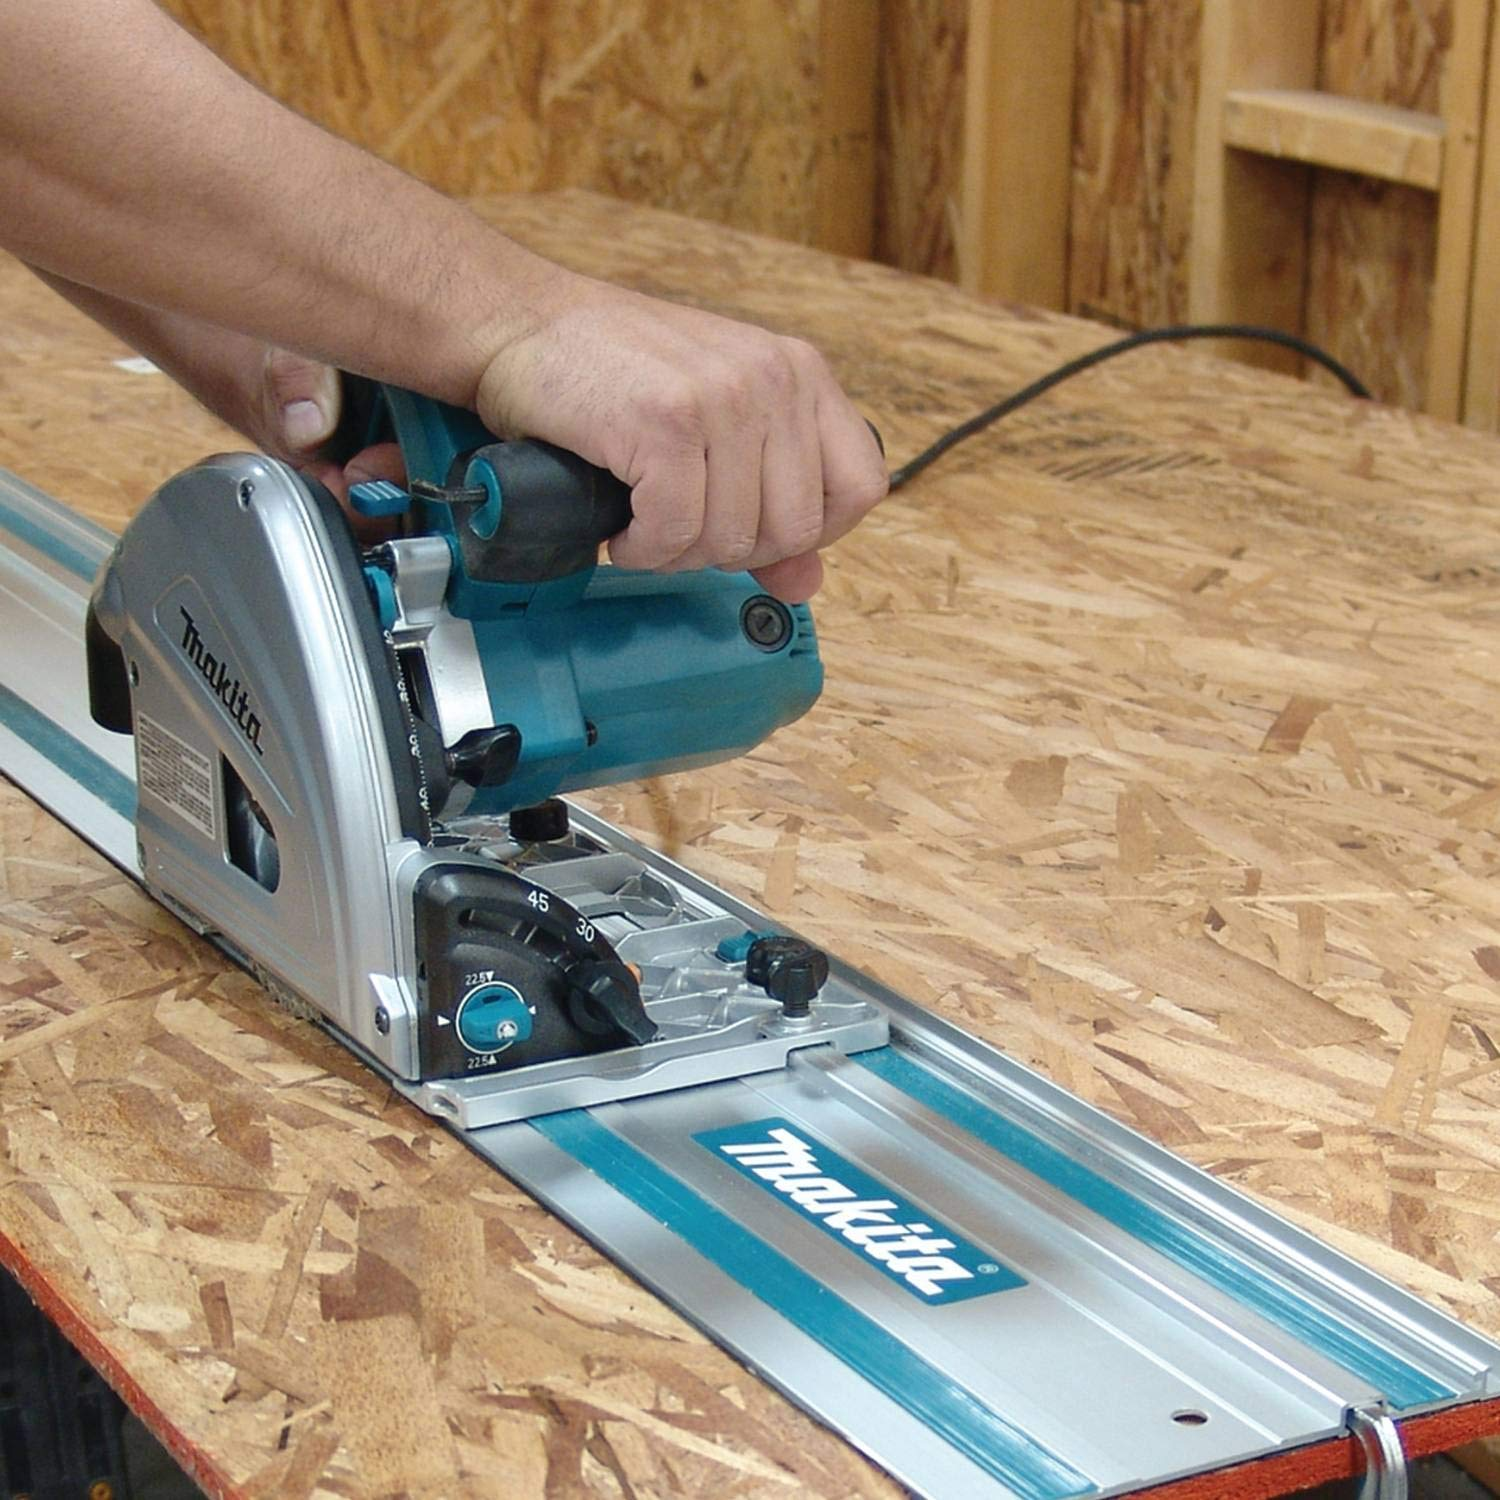 image of makita track saw in use